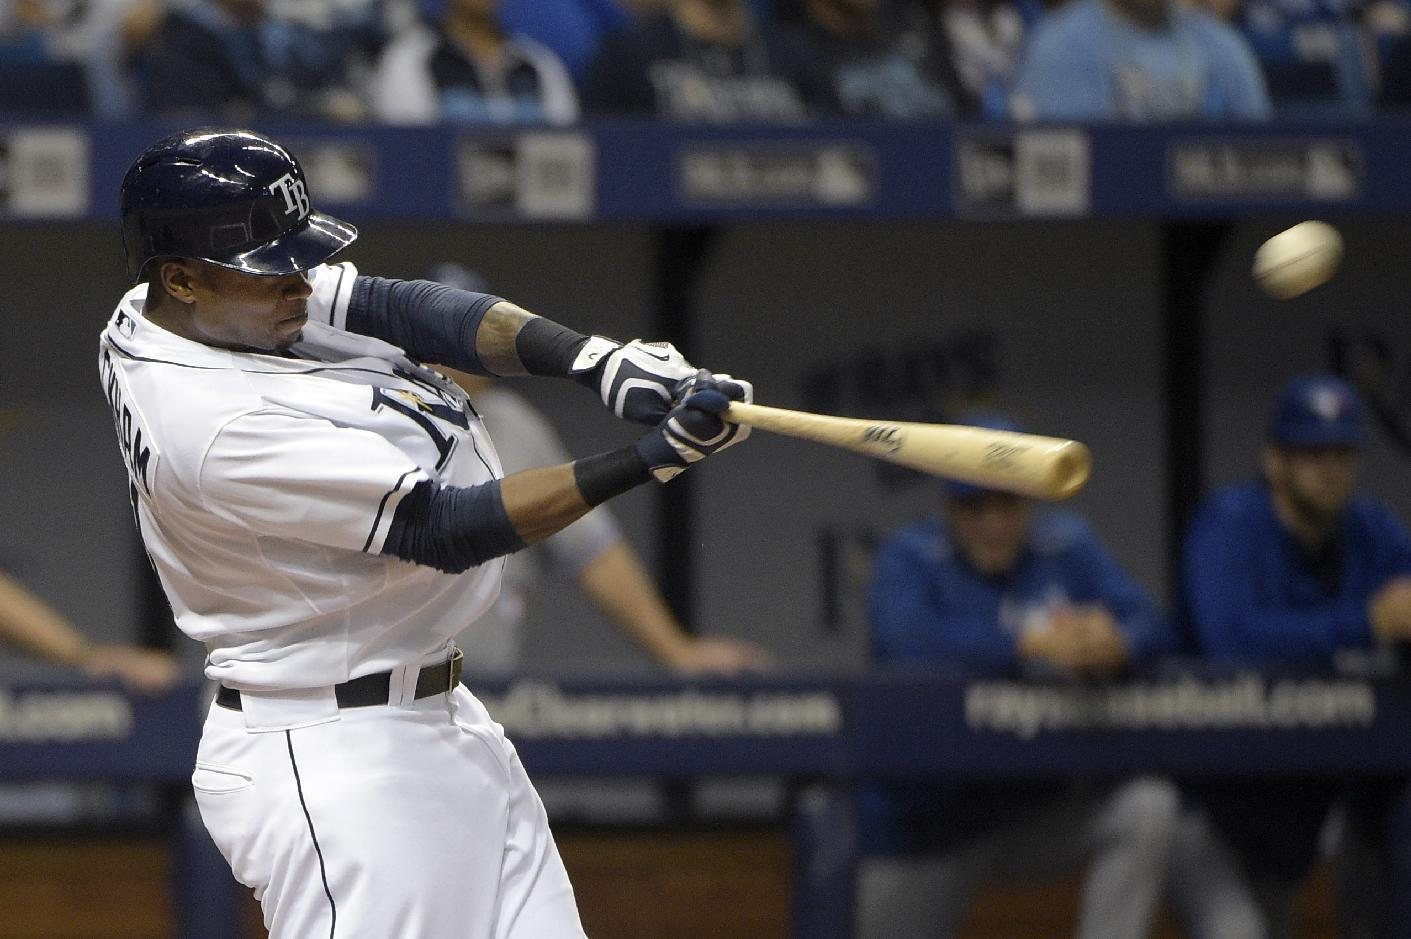 Beckham breaks tie in 8th inning, Rays beat Blue Jays 4-2